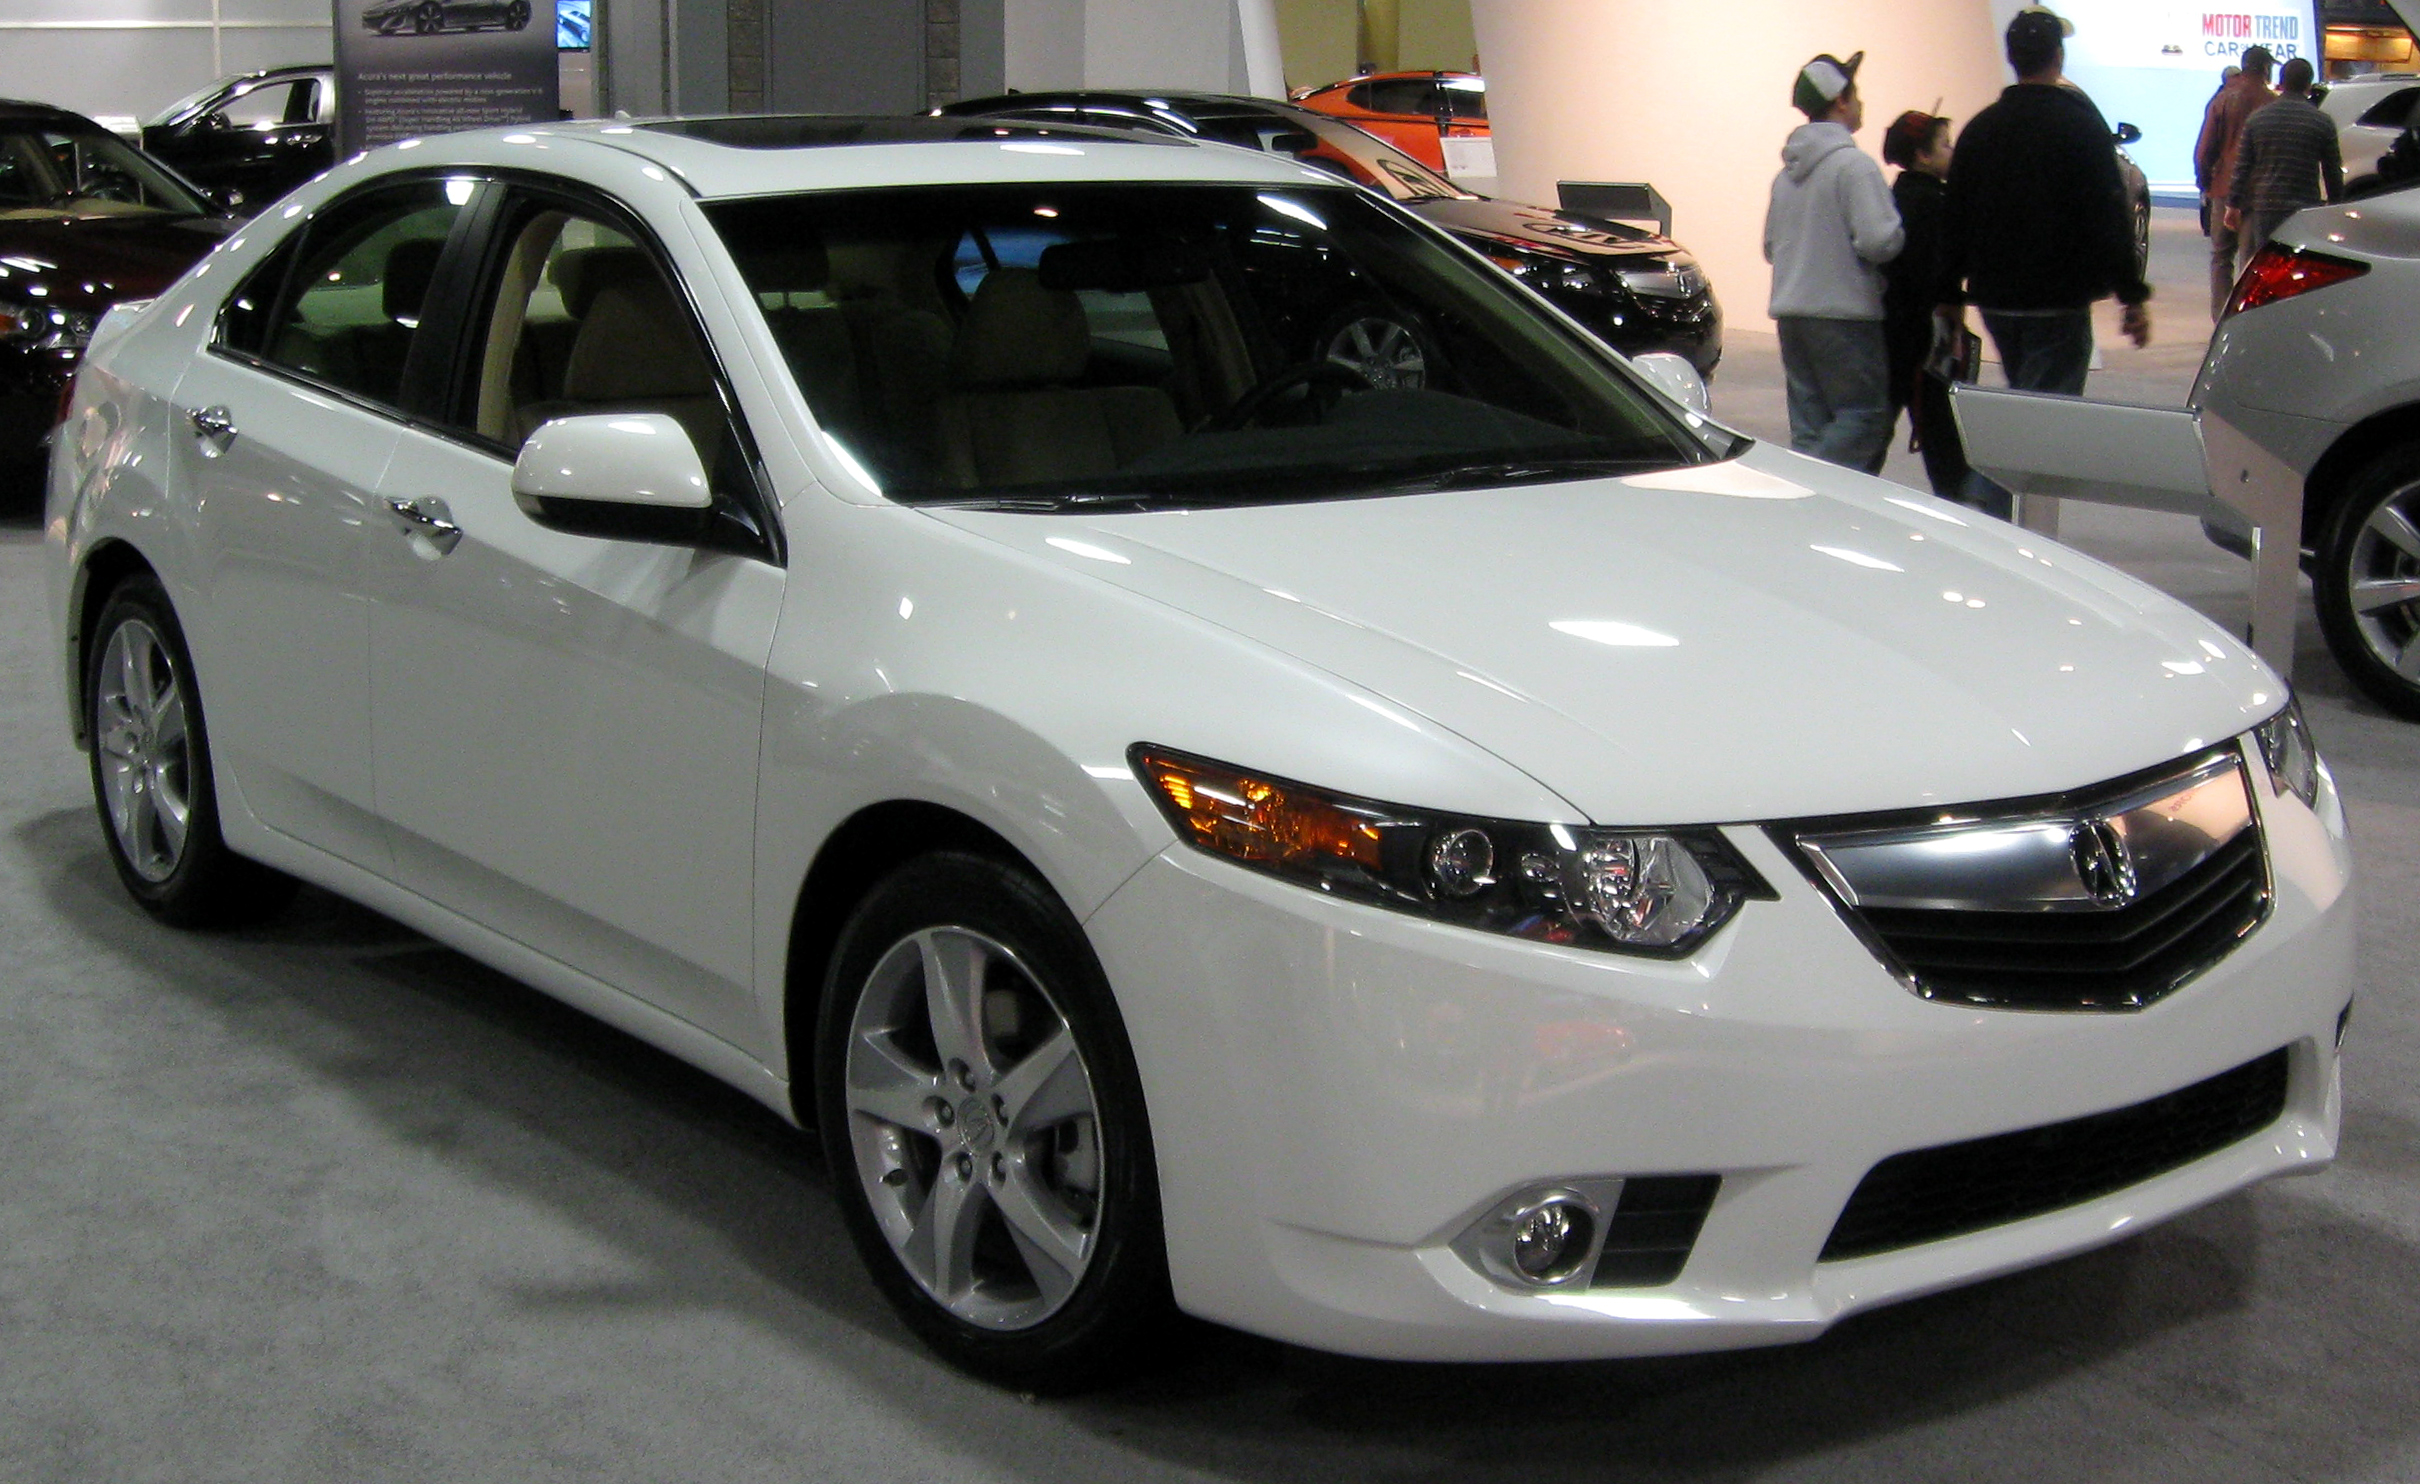 File:2012 Acura TSX sedan -- 2012 DC.JPG - Wikimedia Commons